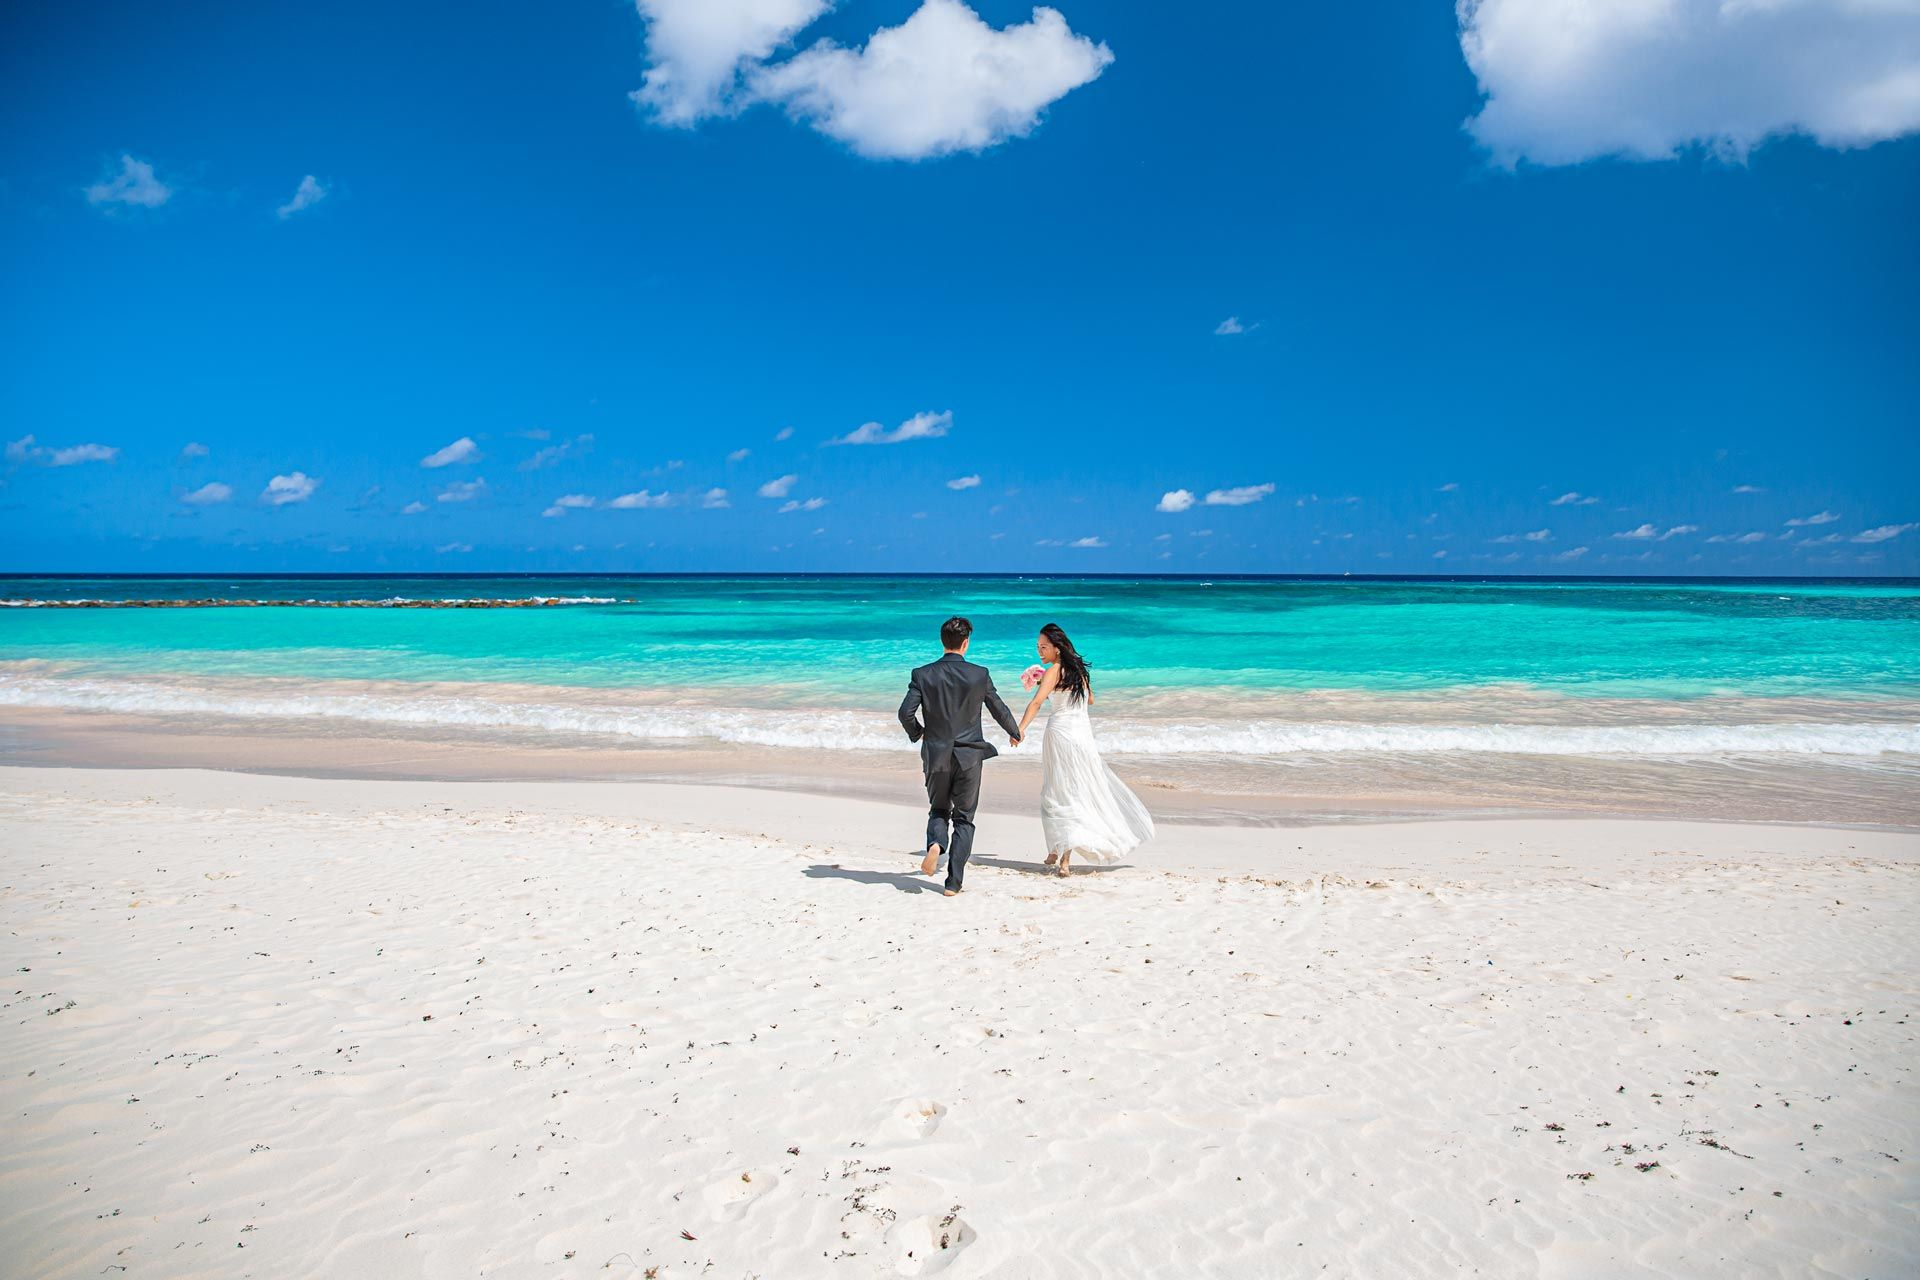 Seven Destination Wedding Locations In Heaven & Documents Required